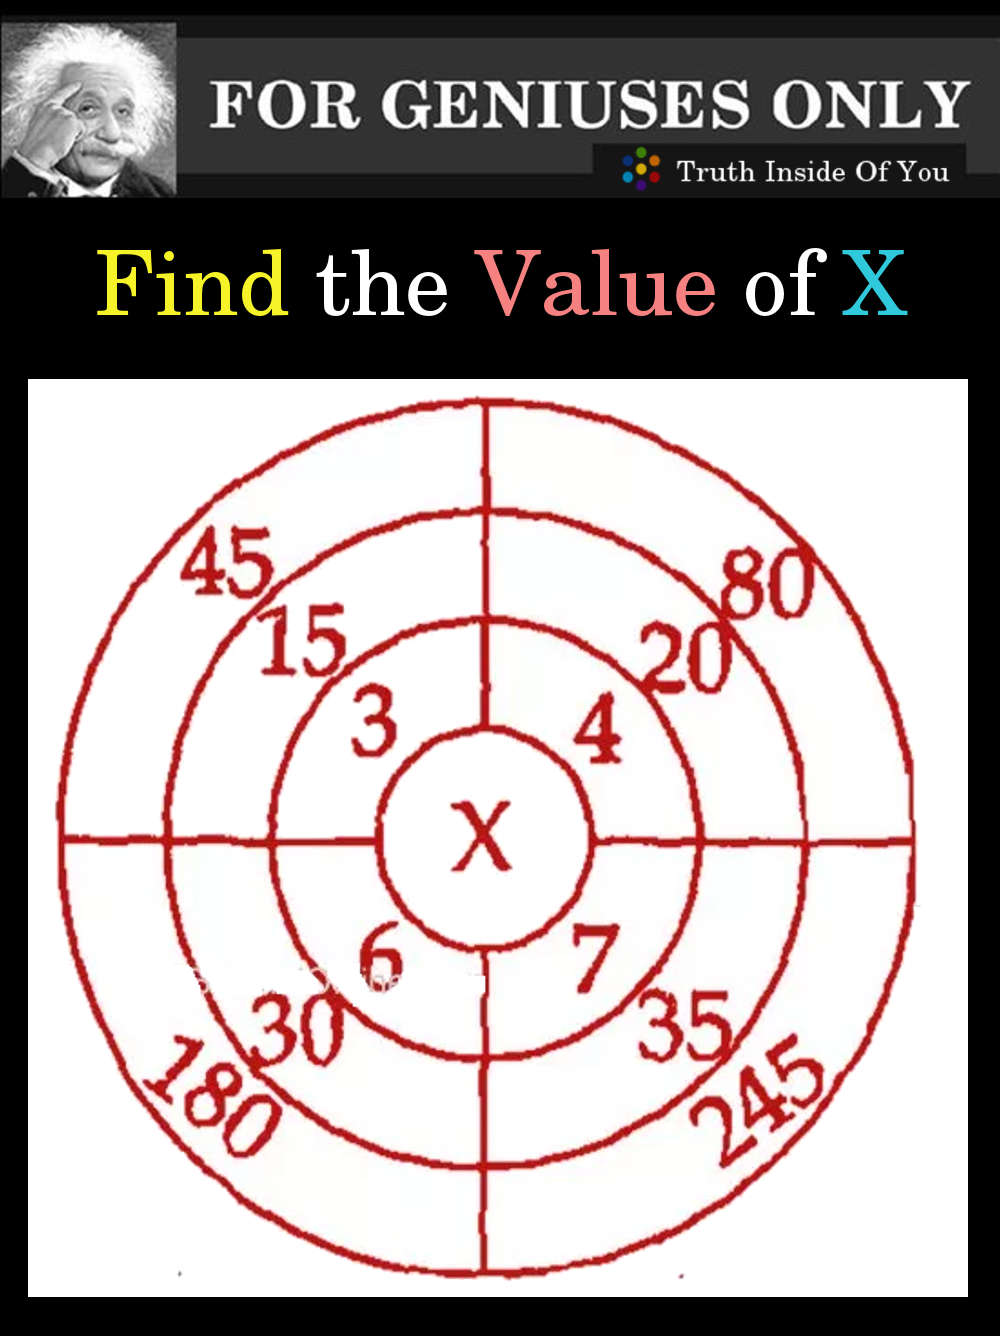 Riddle: Find the Value of X in the Given Picture